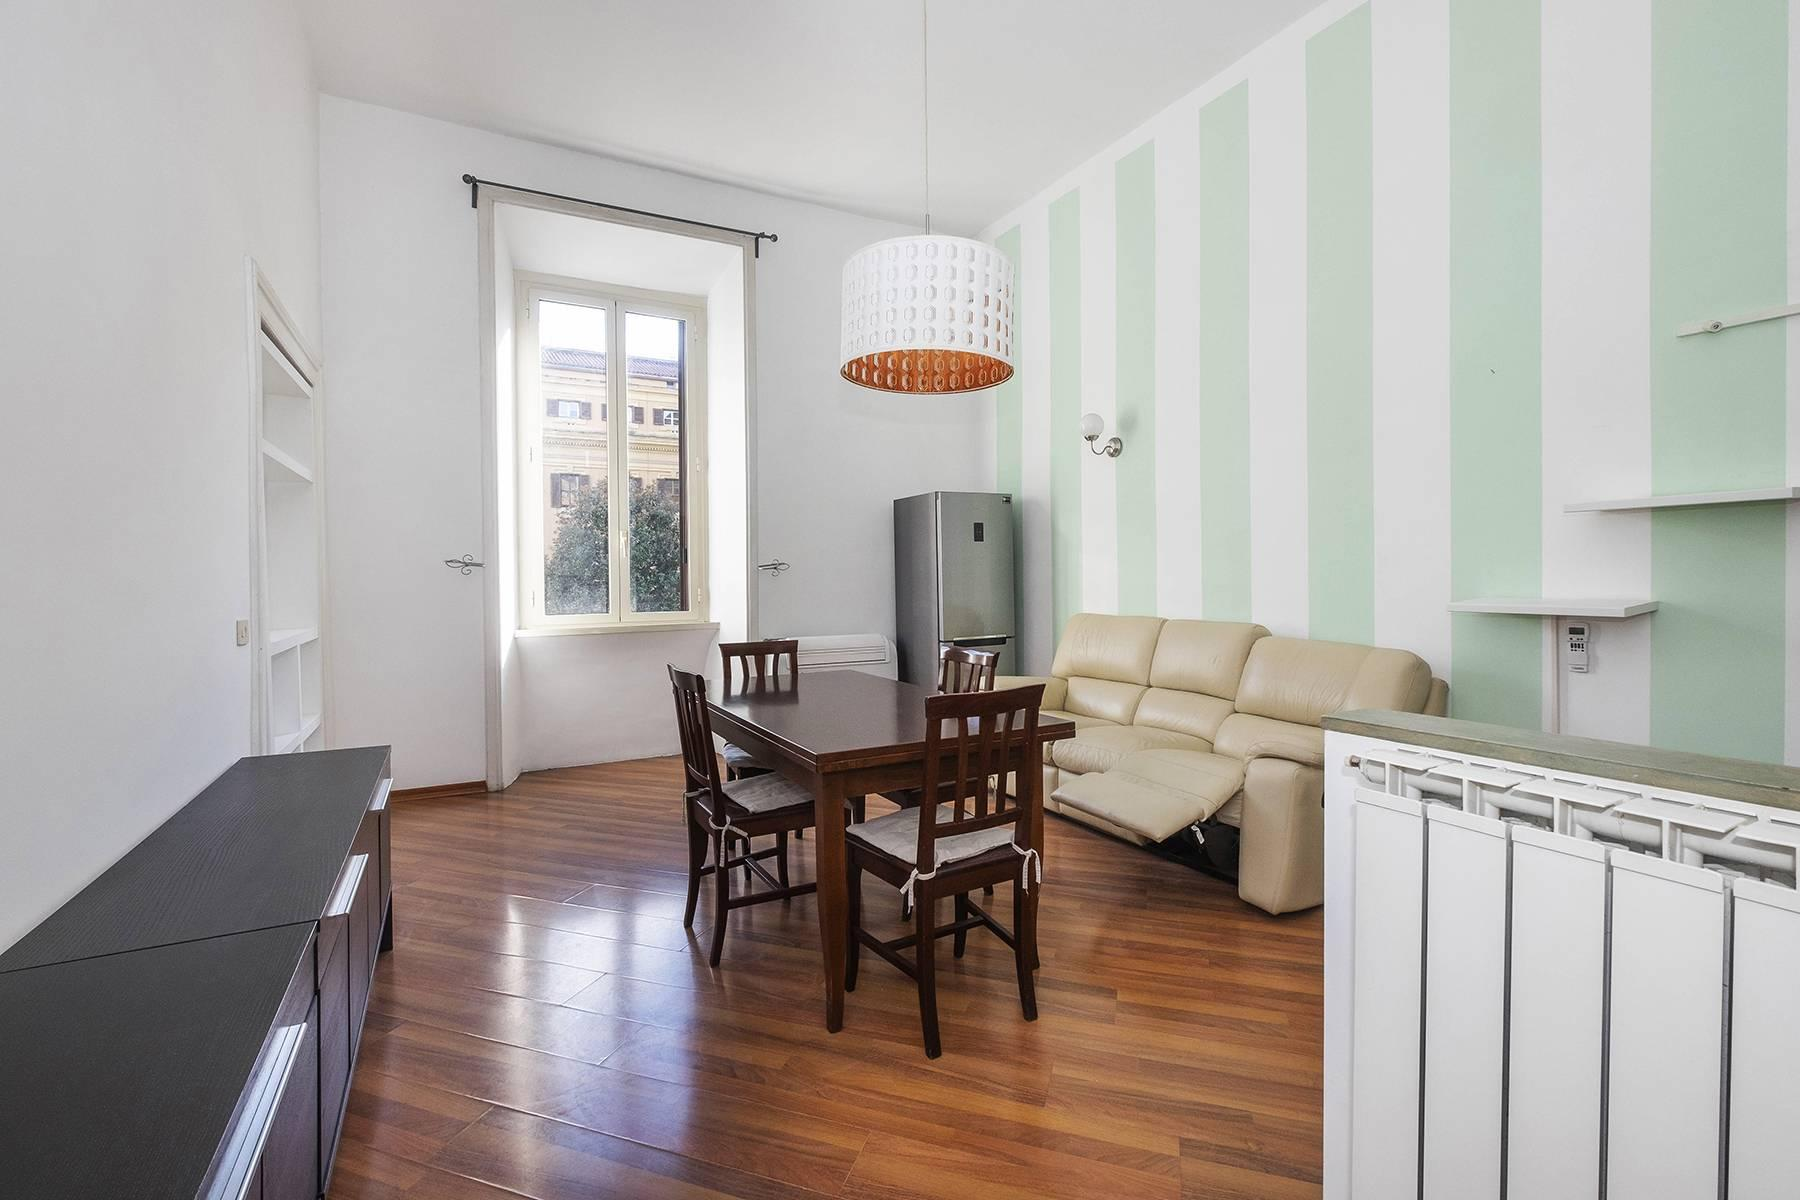 Elegant apartment in the Sallustiano district - 6